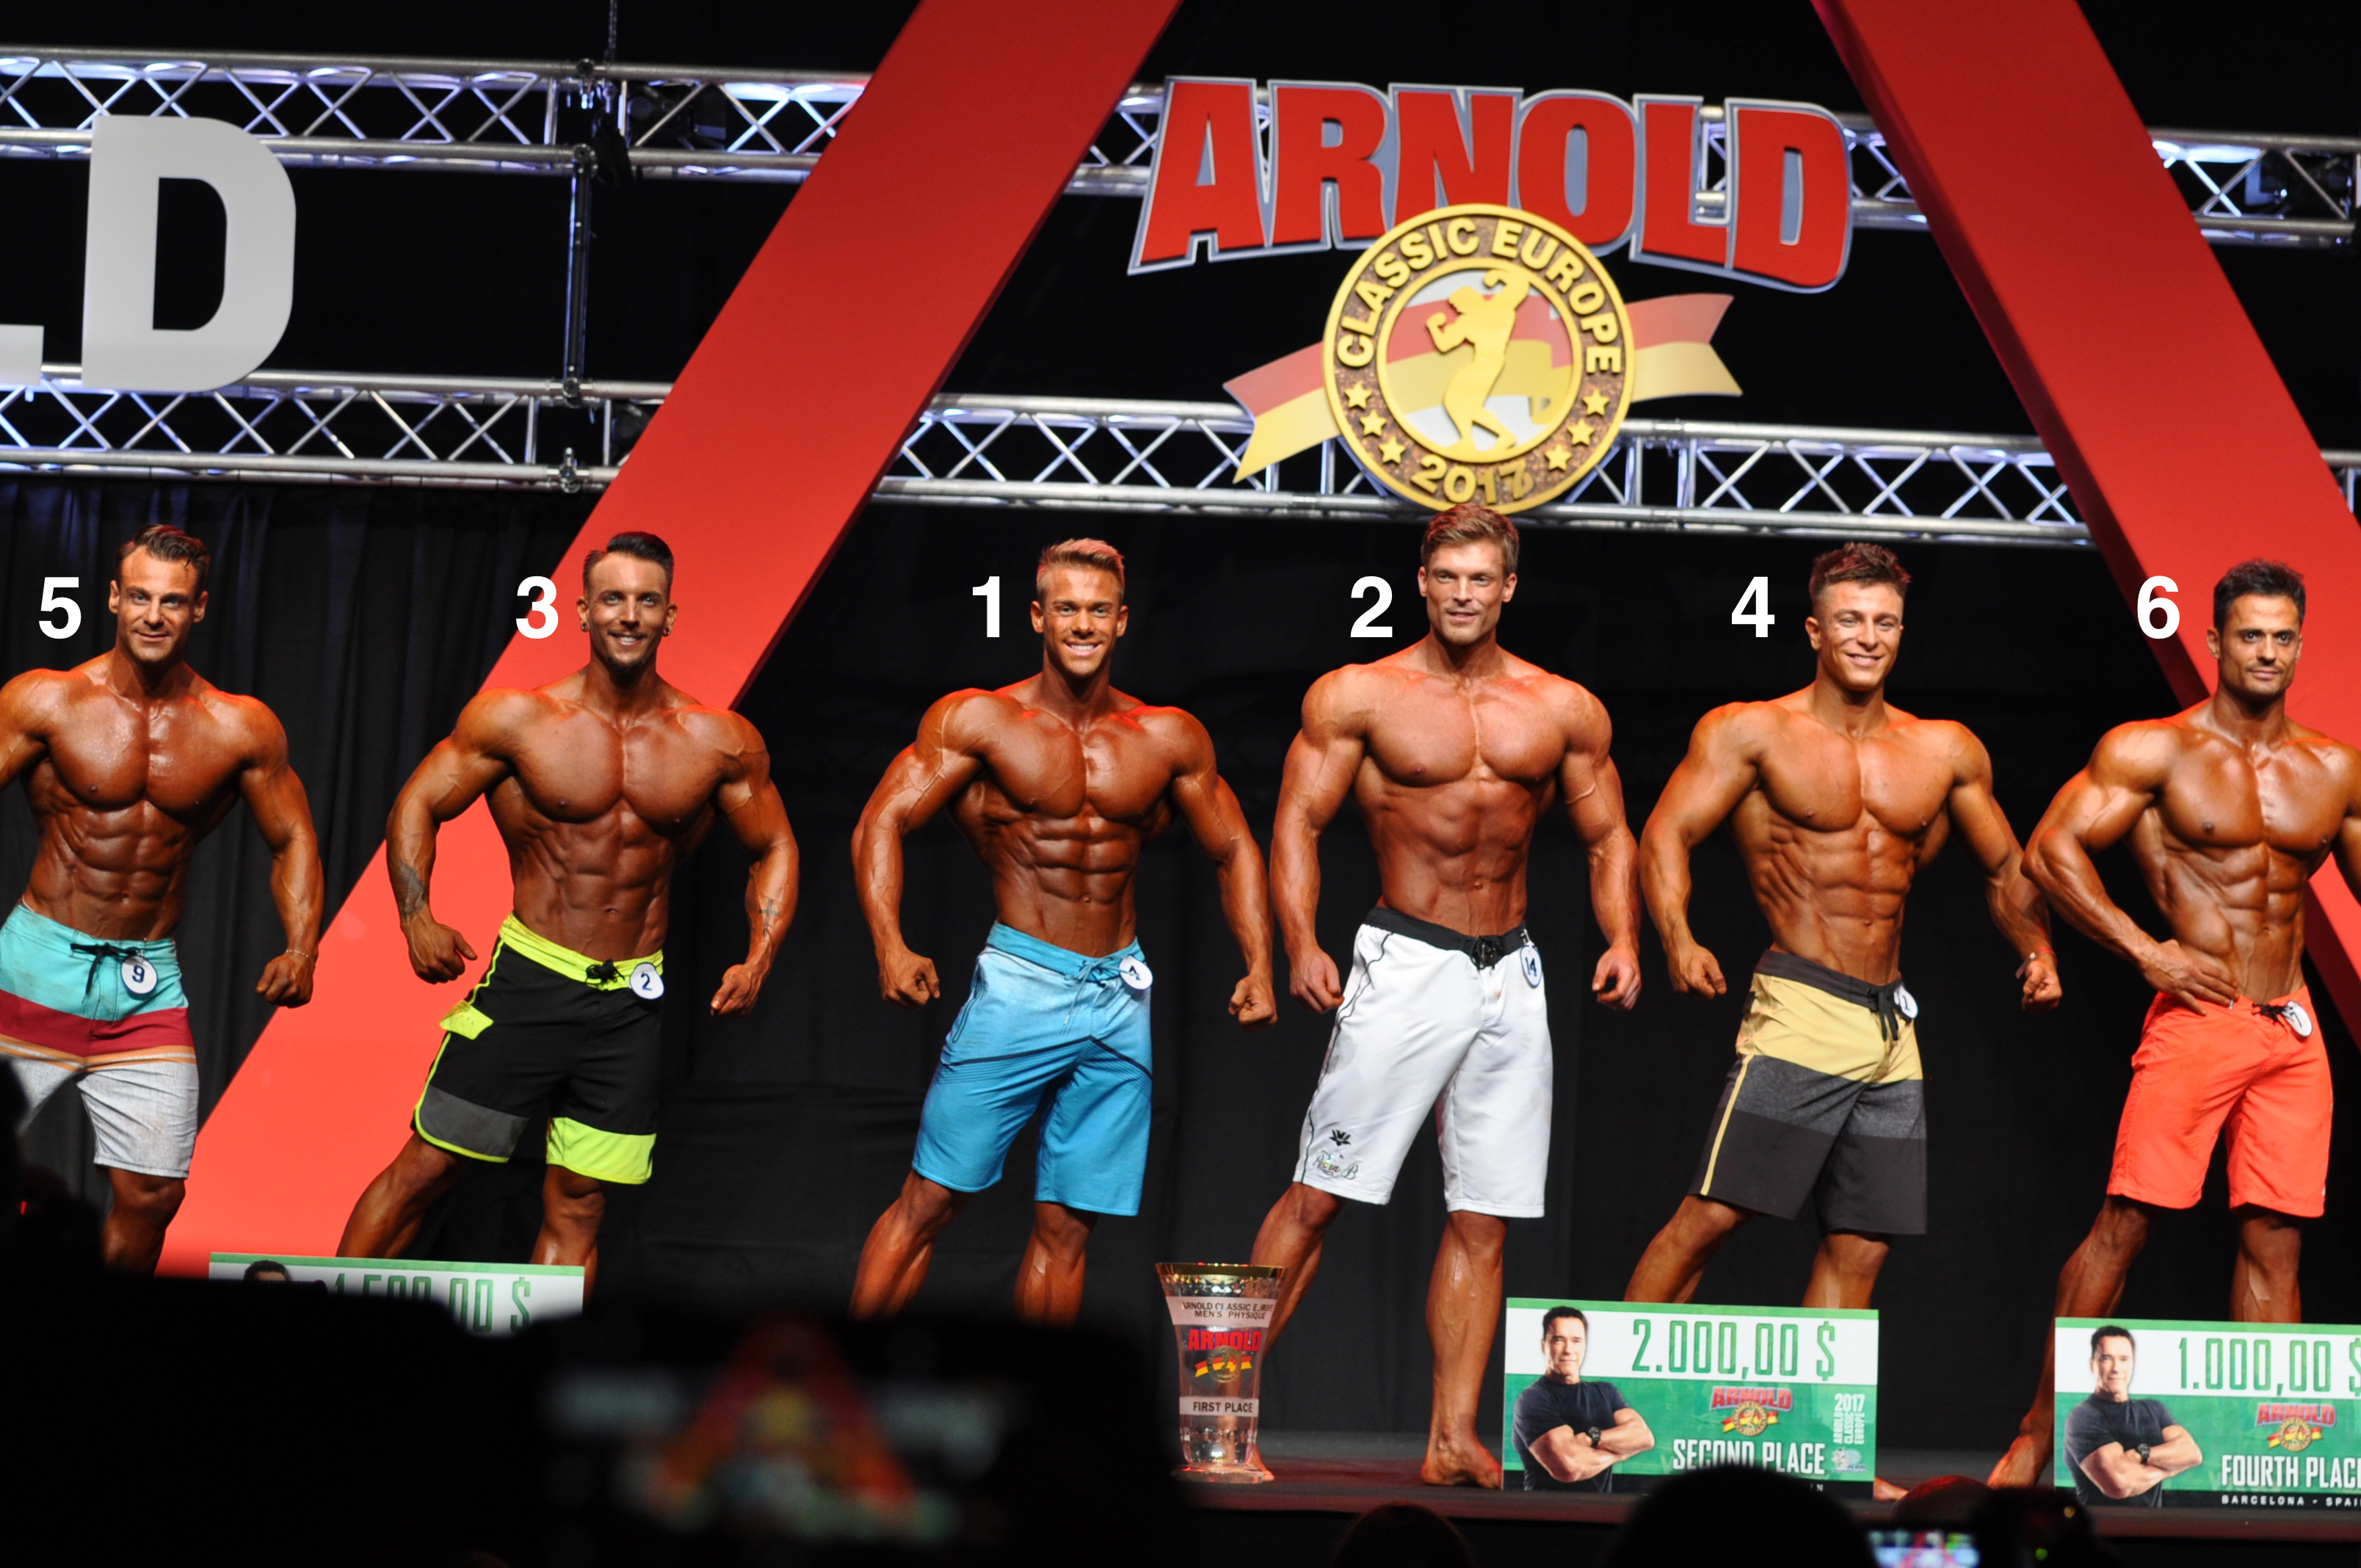 Arnold Classic Europe 2017 Men's Physique top 6